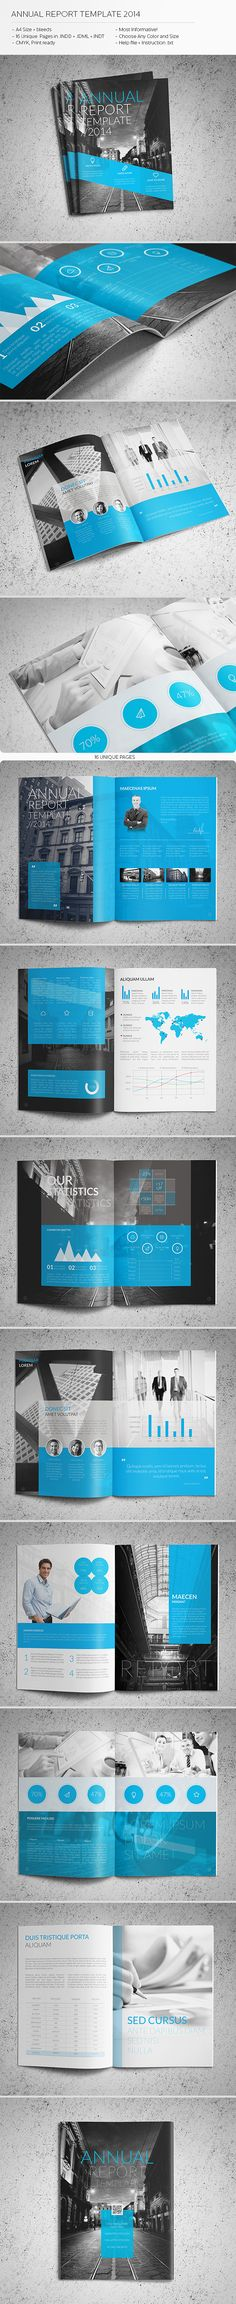 Annual Report Annual reports, Brochures and Editorial - annual report template design